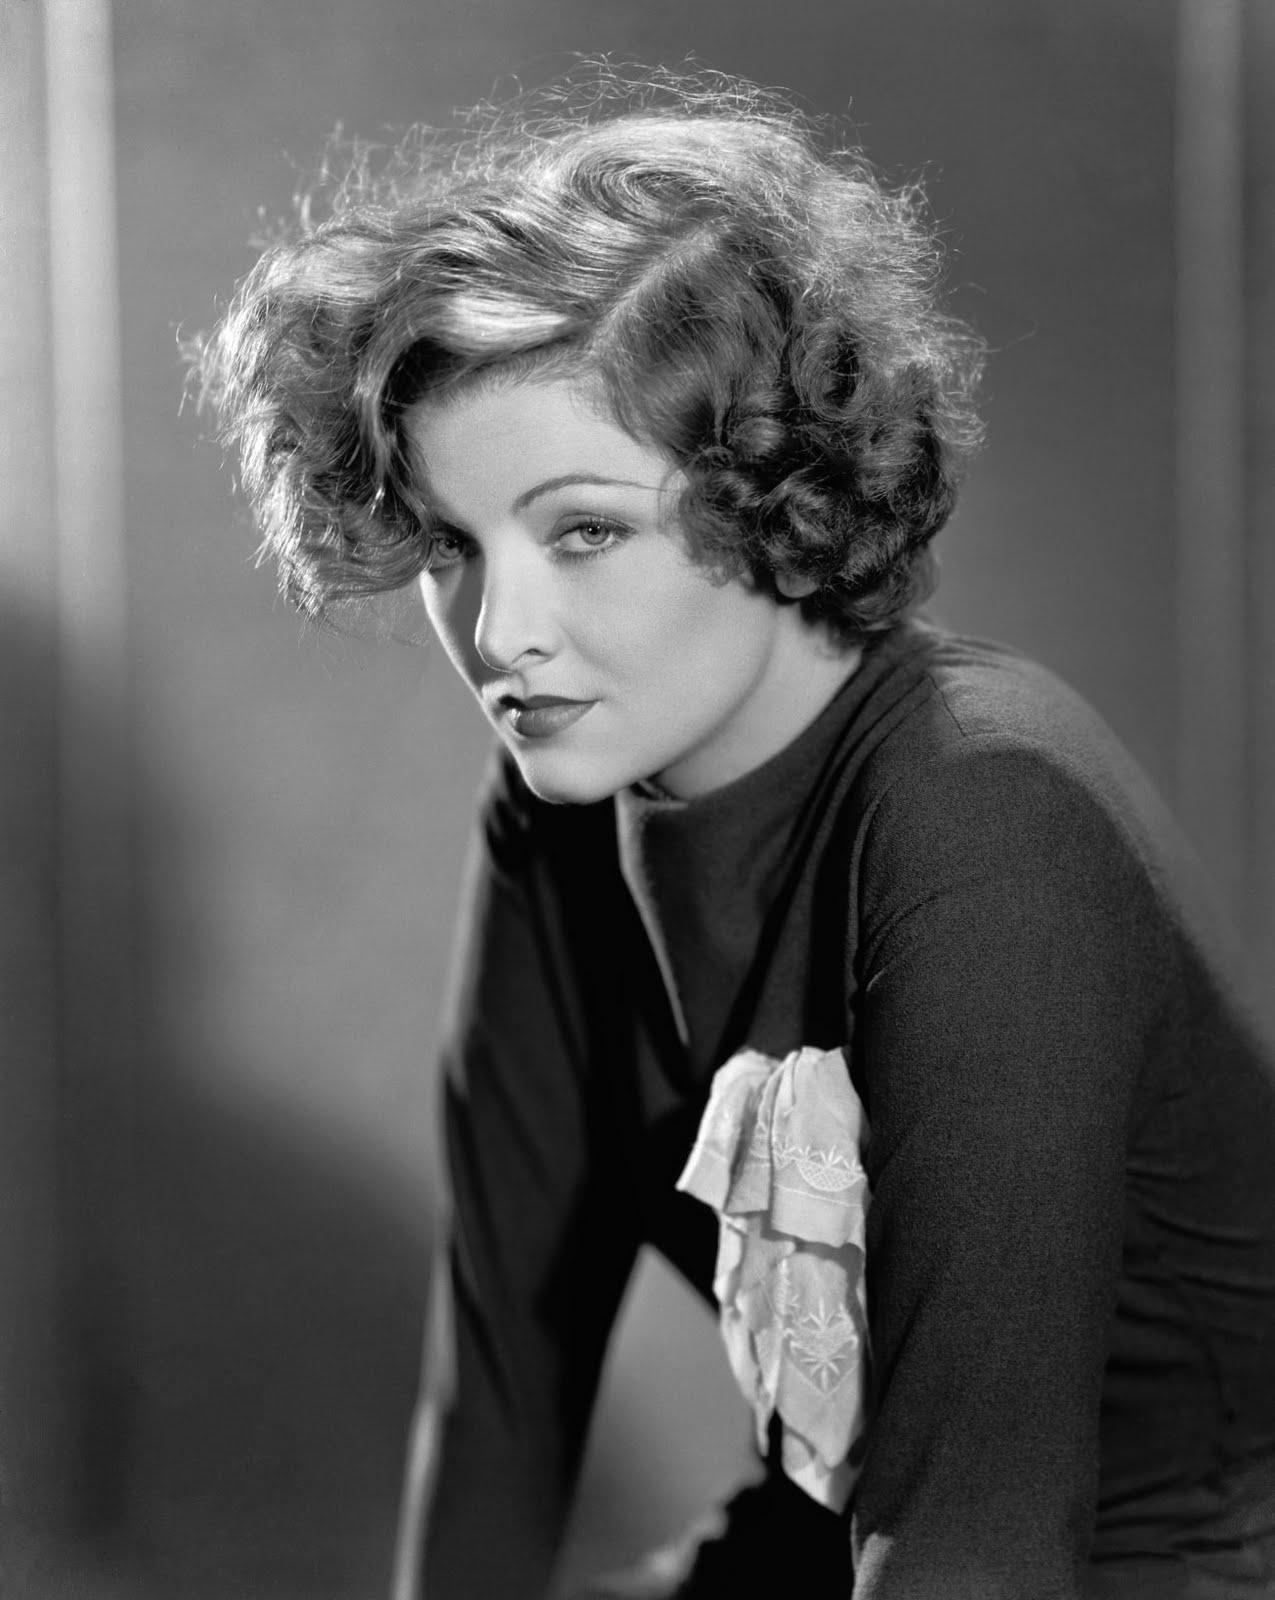 30 Stunning Black And White Portraits Of Myrna Loy From The 1930S And 1940S  Vintage -4244